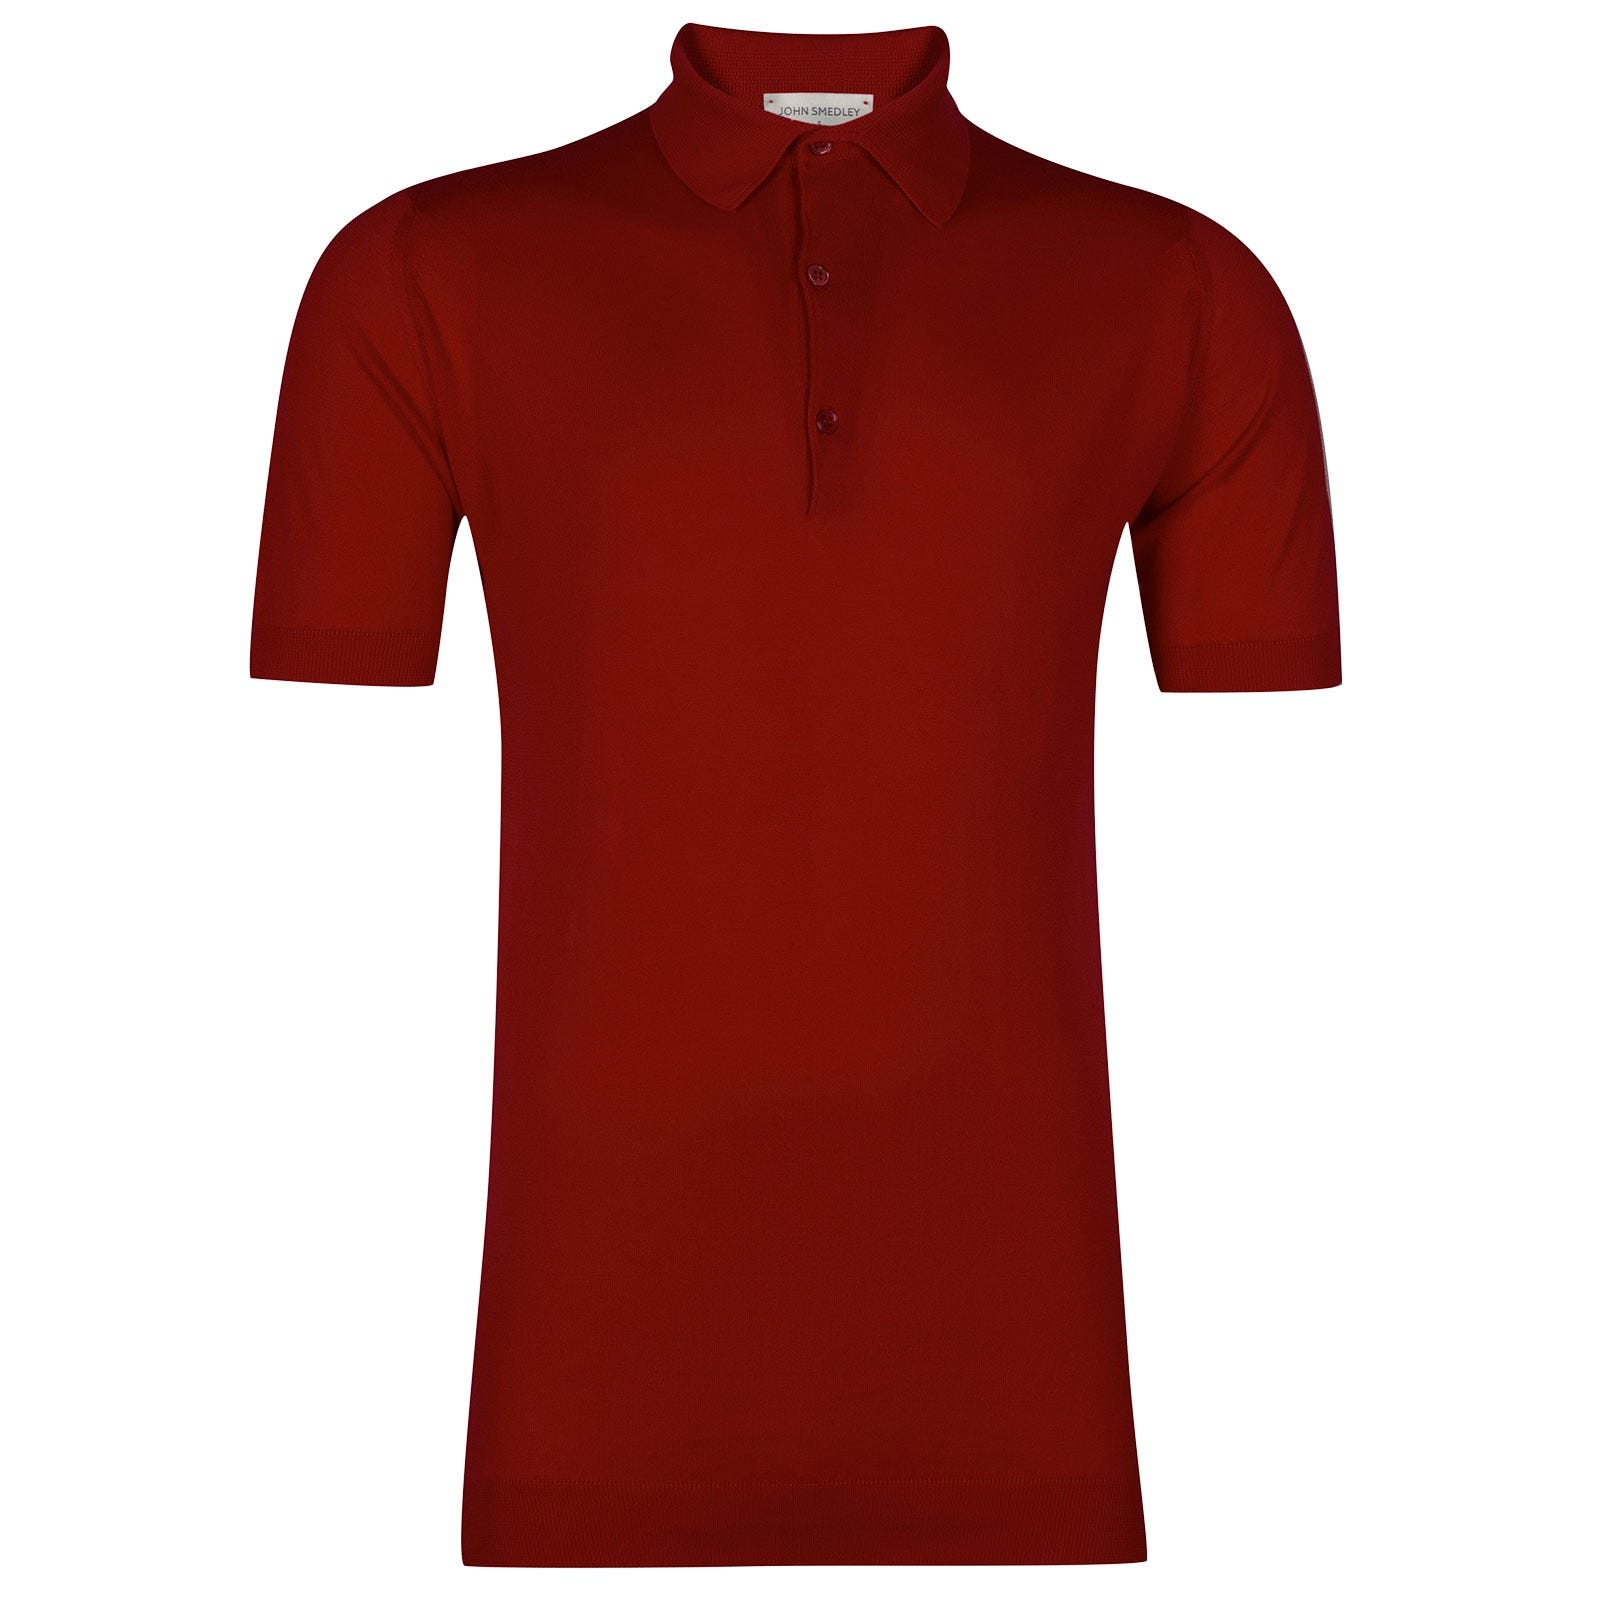 John Smedley Adrian Sea Island Cotton Shirt in Thermal Red-L